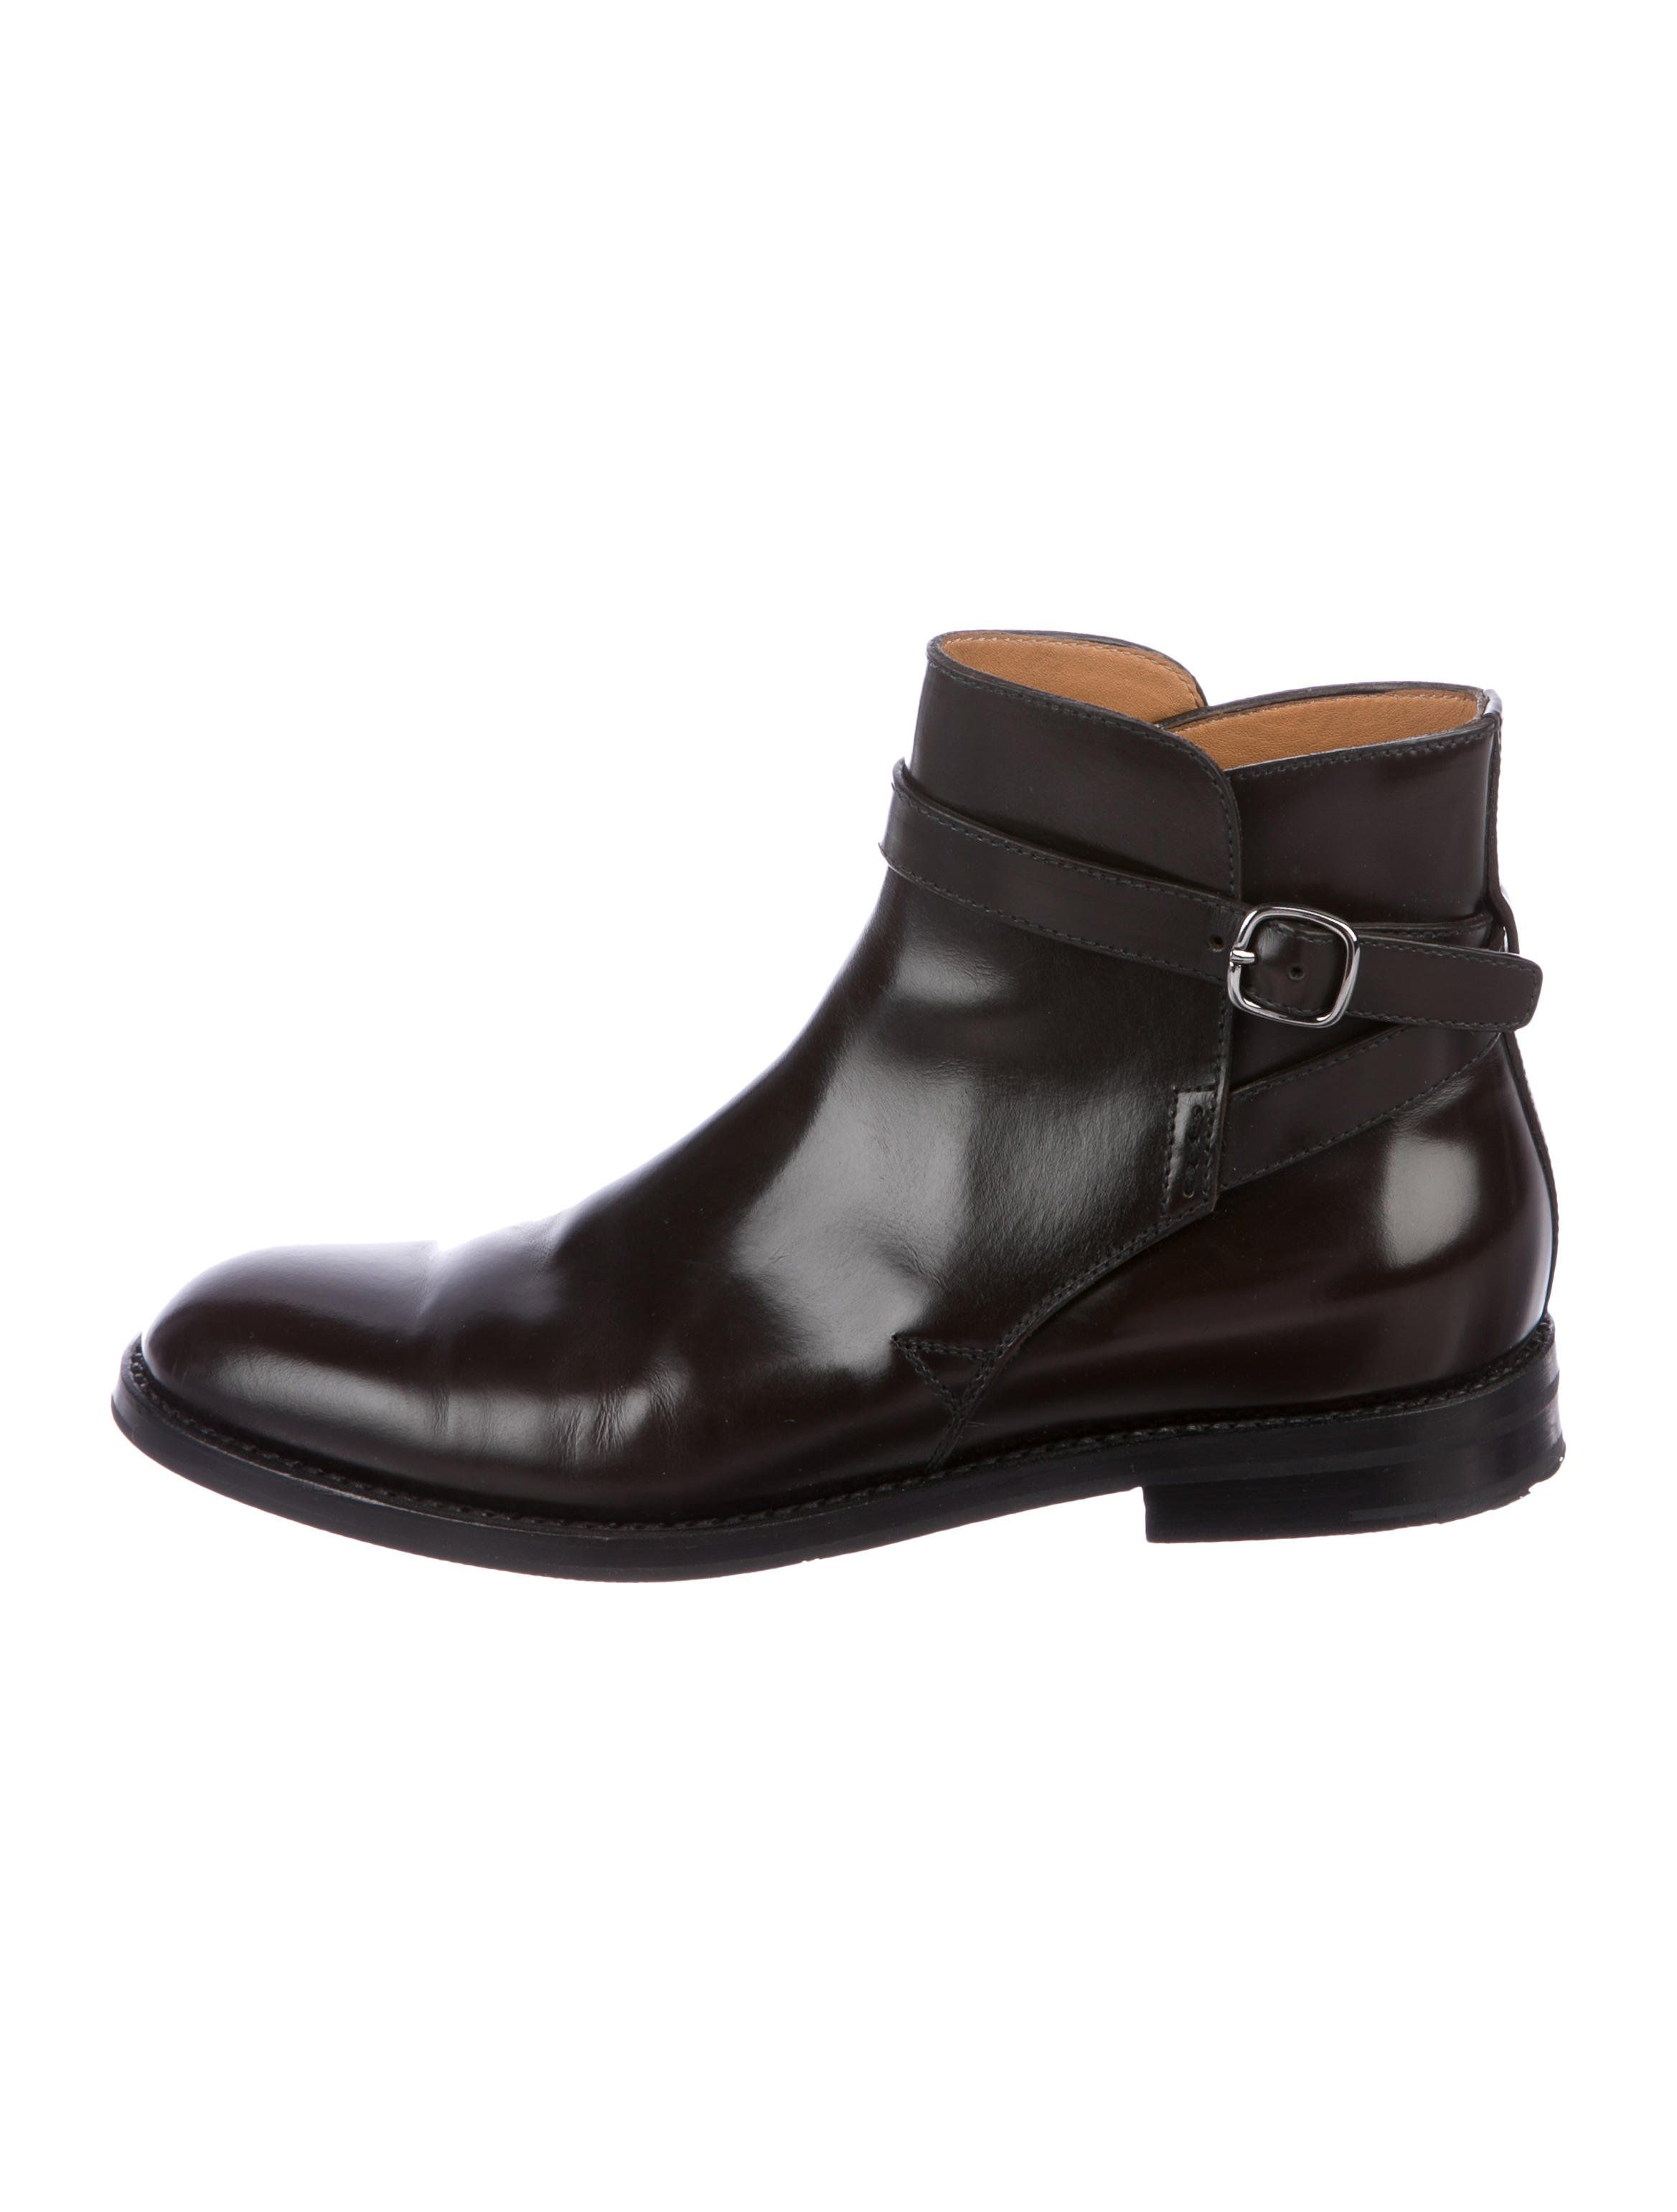 outlet cost geniue stockist online Church's Round-Toe Ankle Boots outlet affordable mRuQRKukep